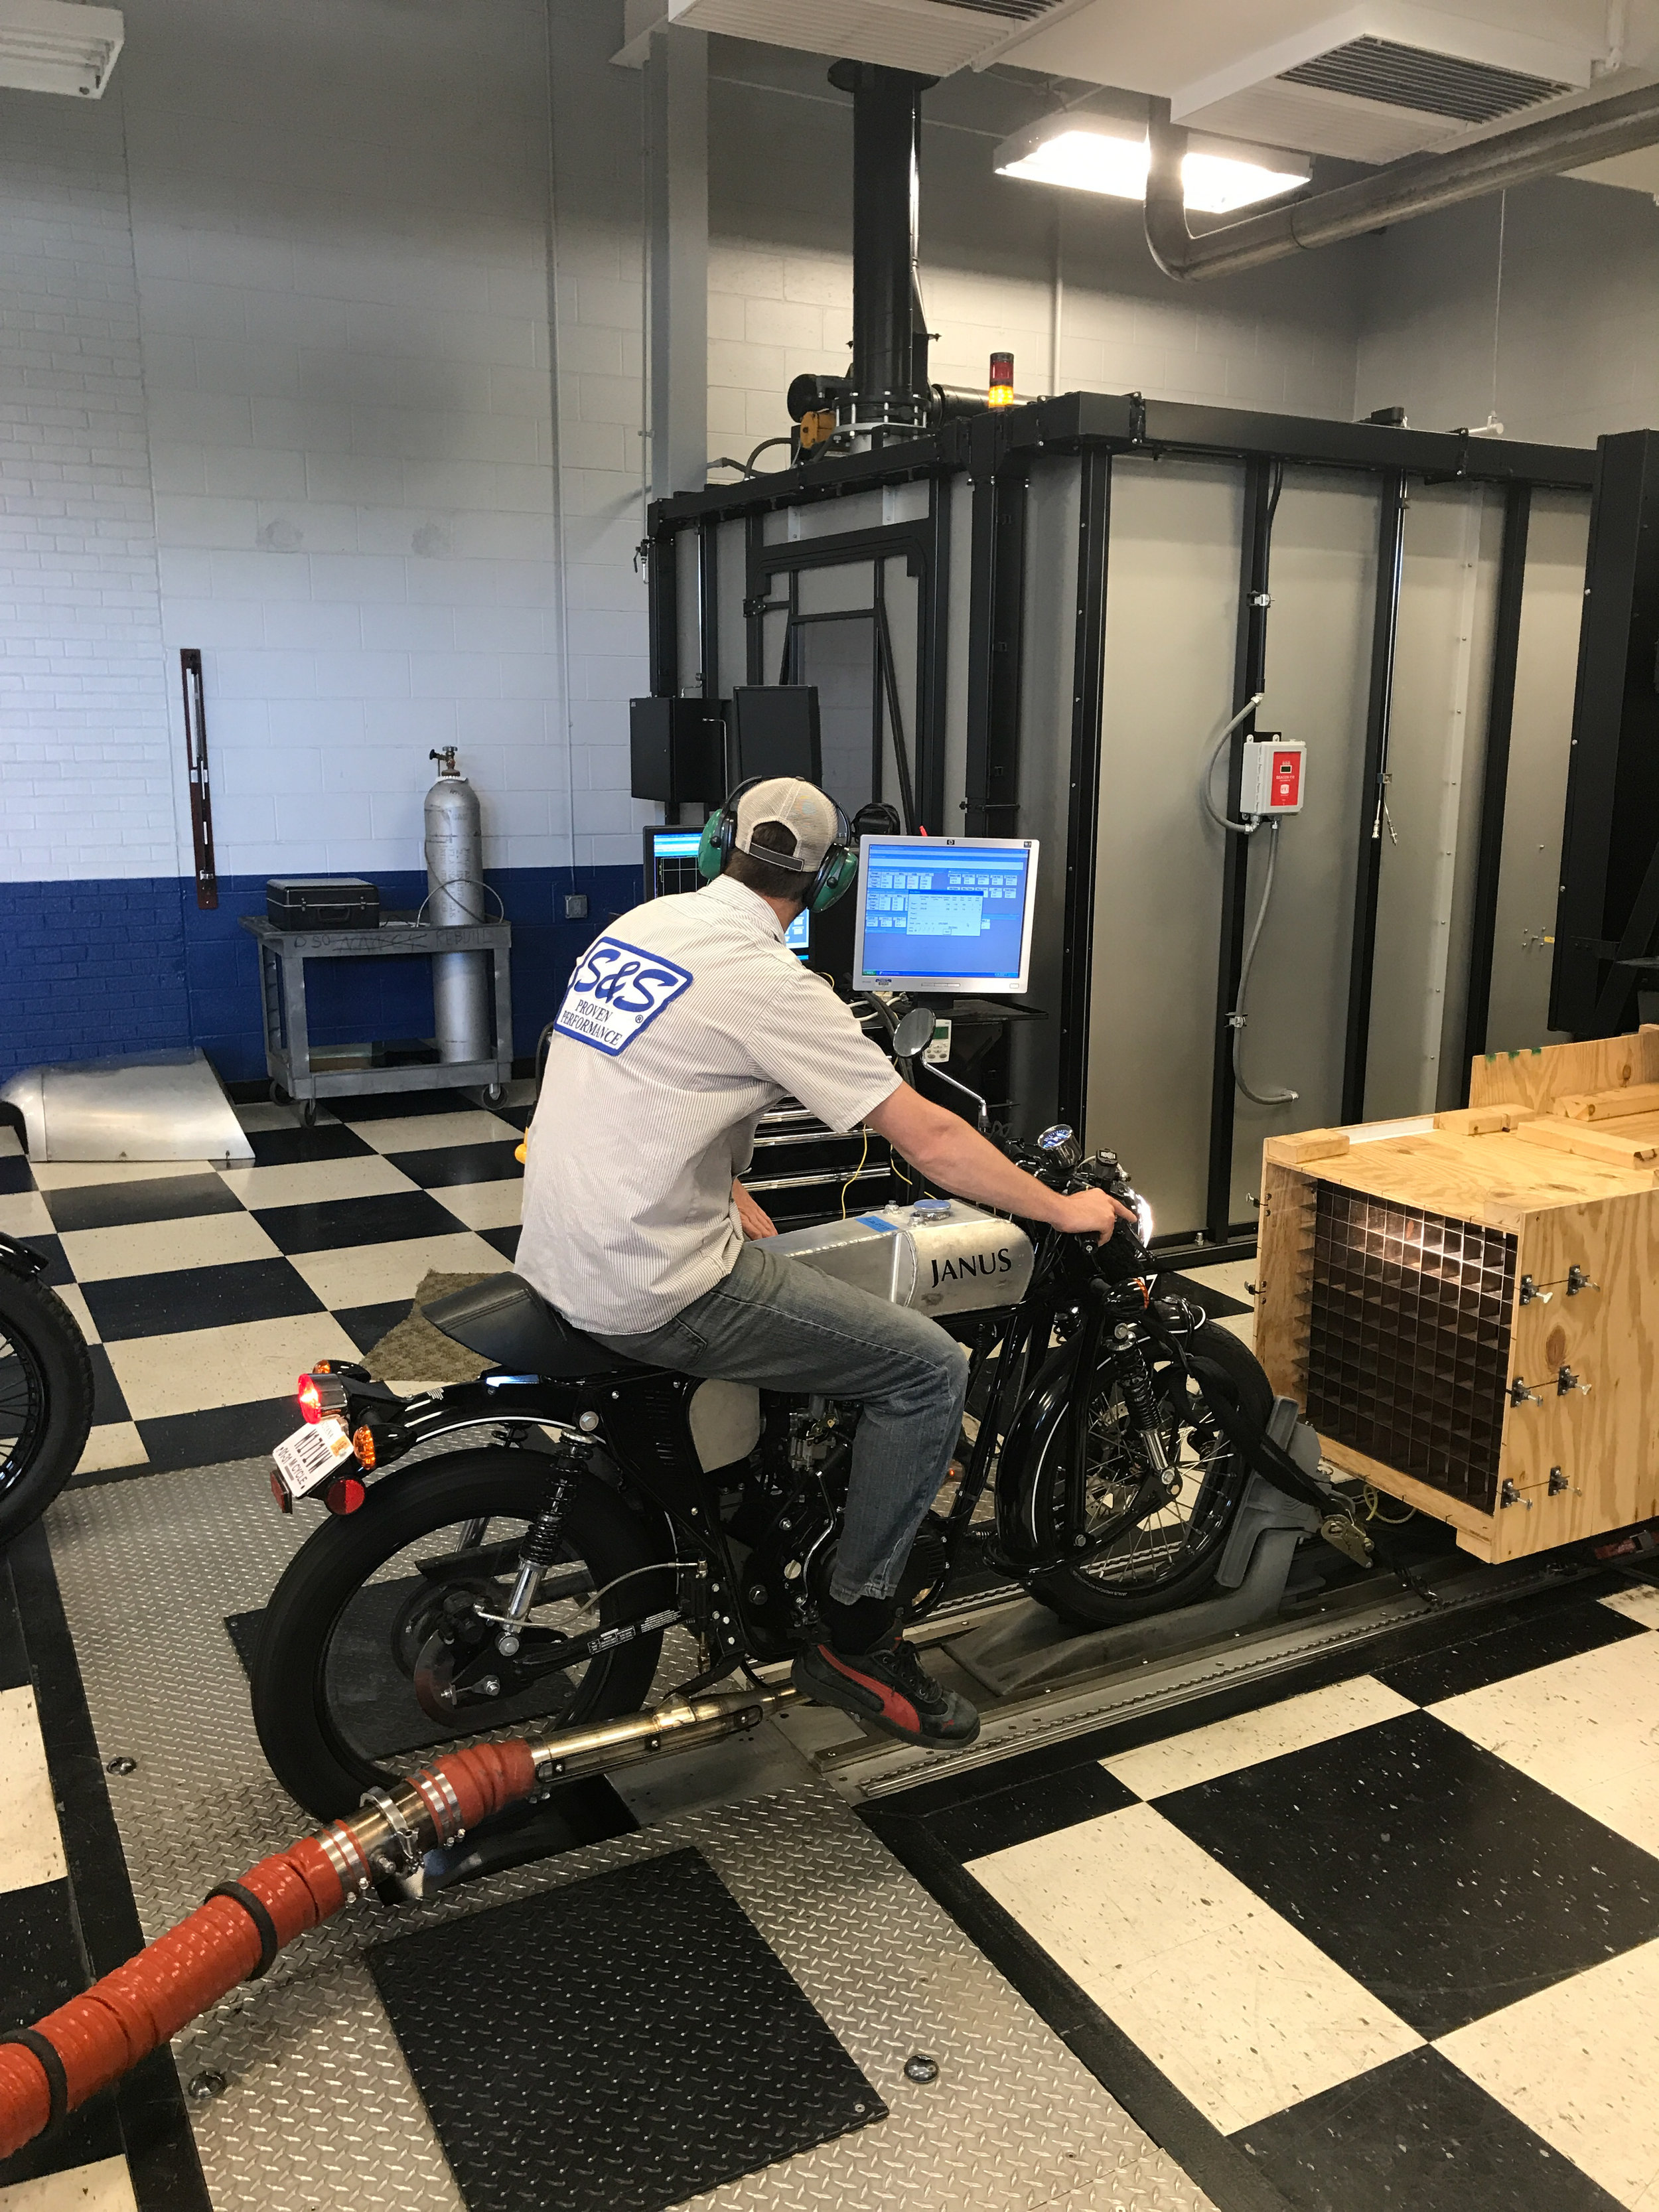 Emissions tech, Matt, onboard the Janus test mule at S&S Cycle's test facility in Lacrosse, Wisconsin.